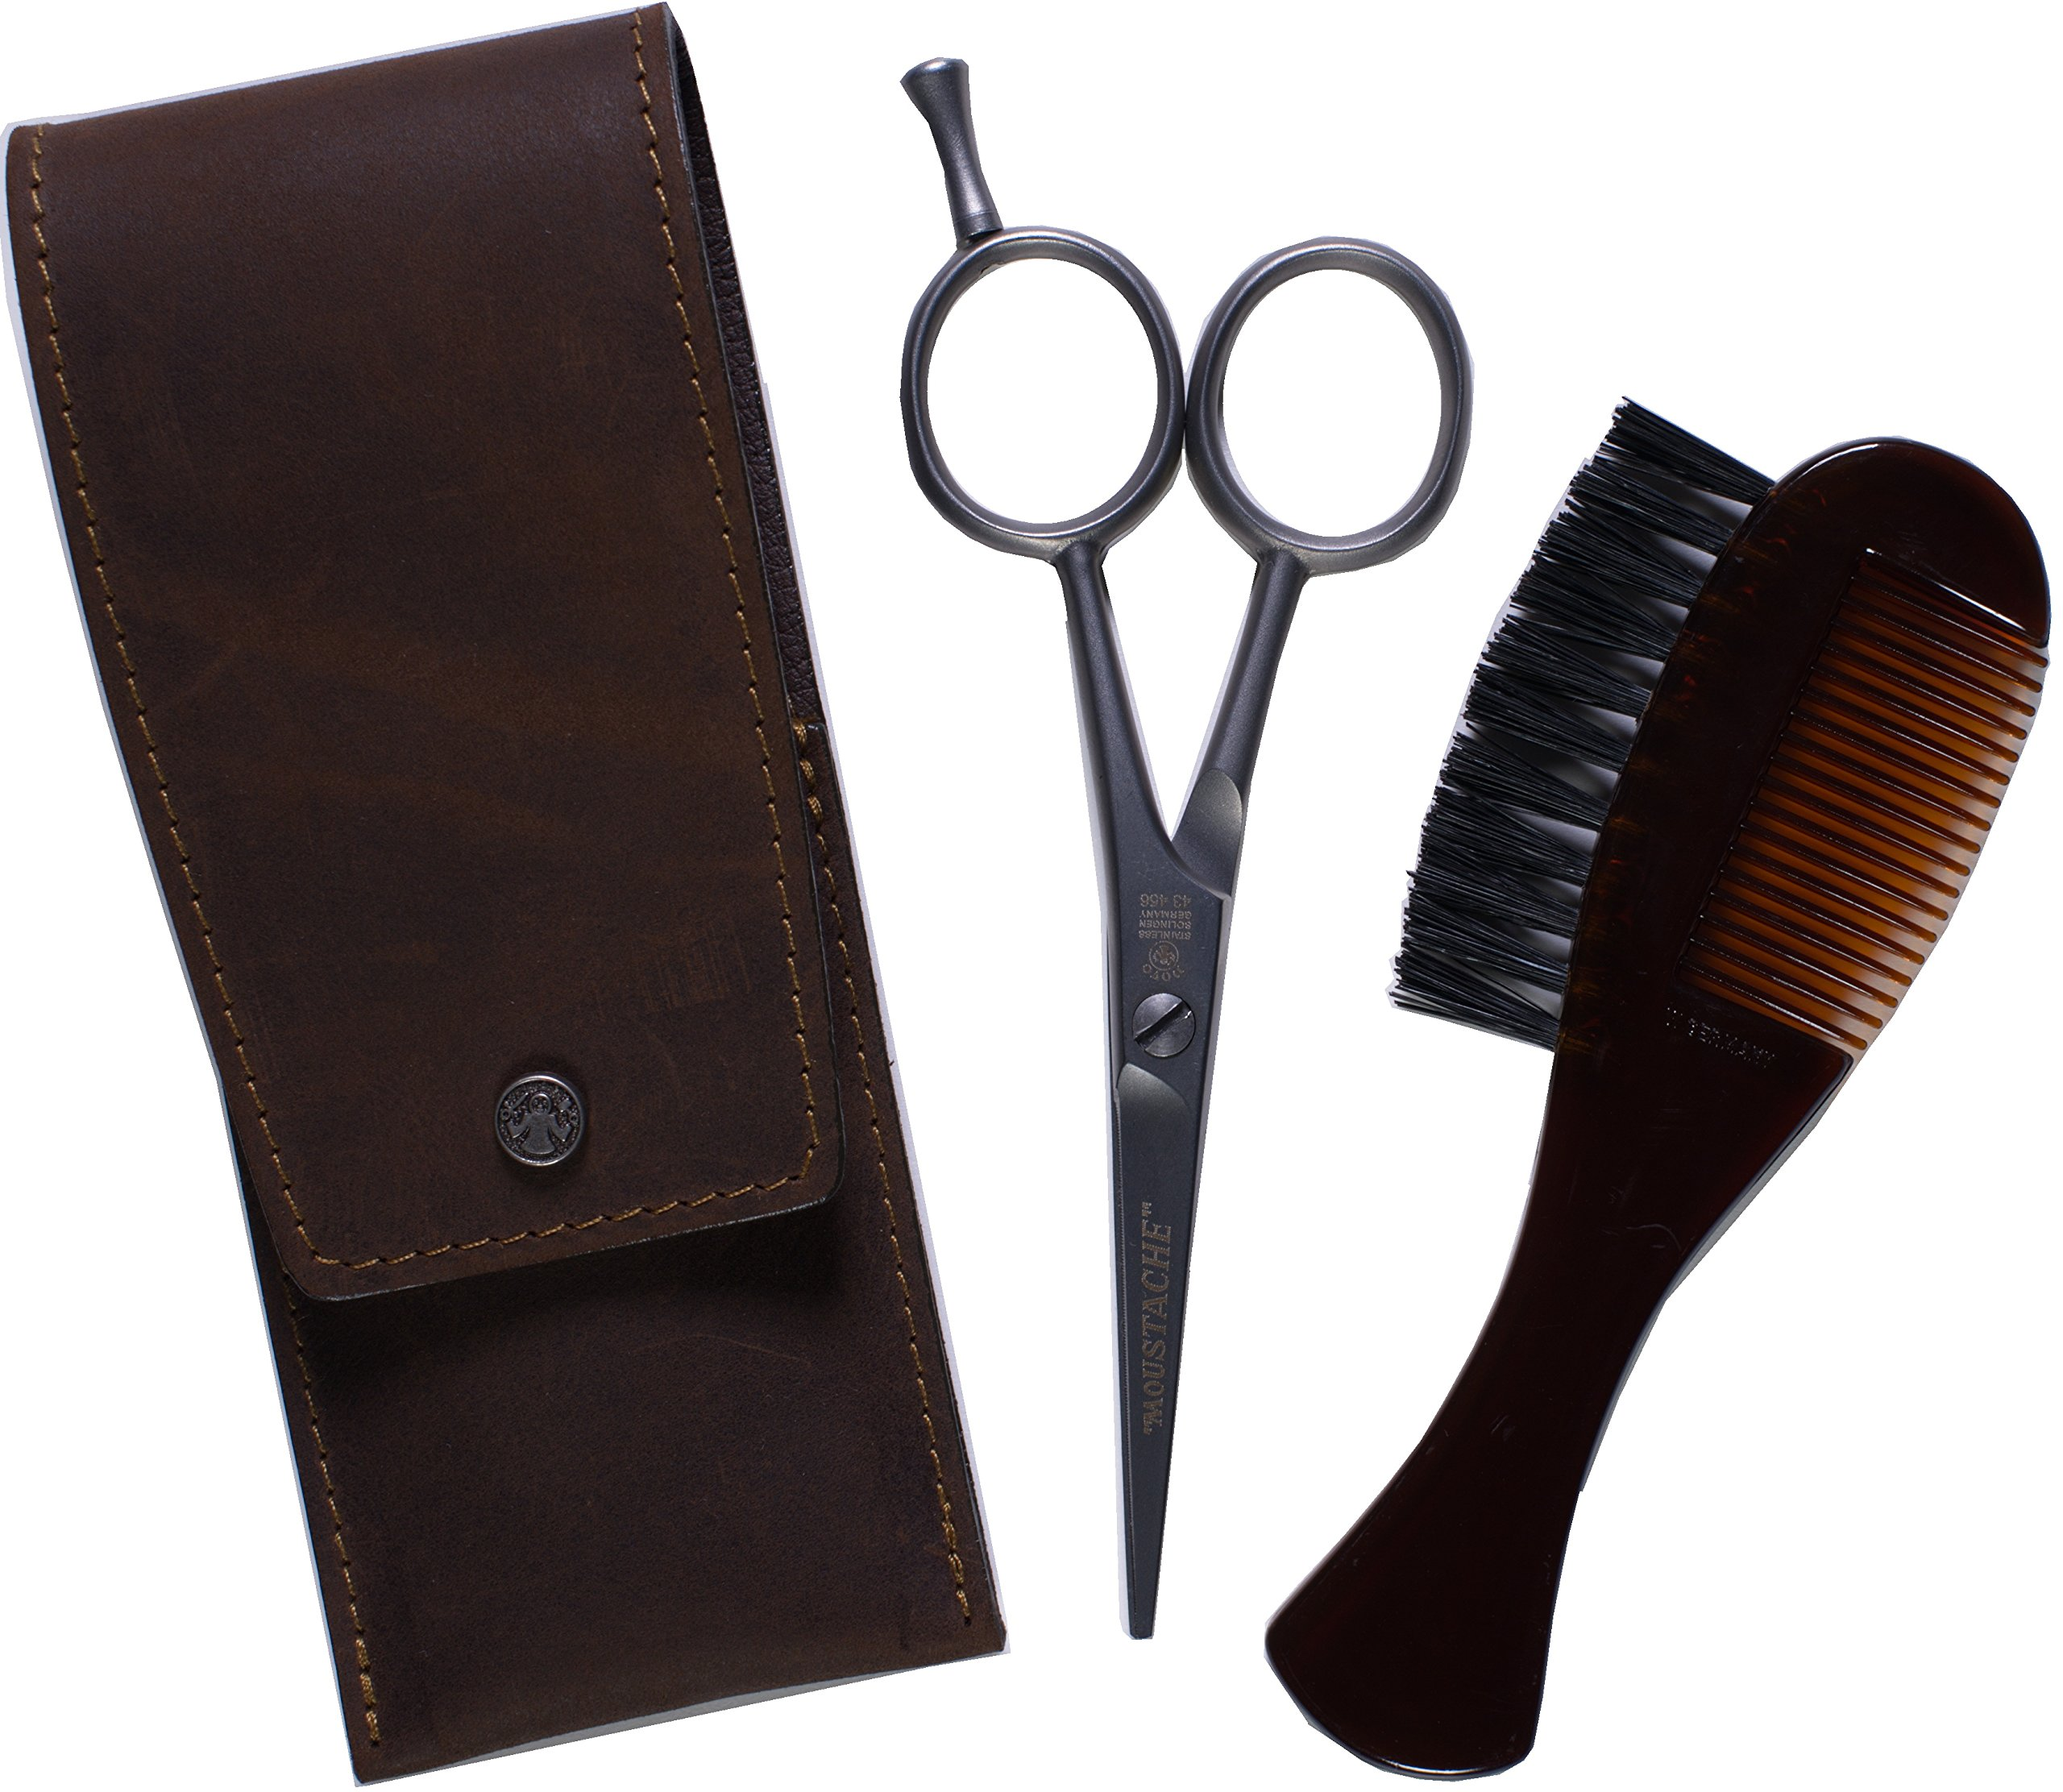 Dovo Beard and Moustache Scissor Set - Comb/Brush, Custom Case, Stainless Steel 4.5-Inch Scissor, Made in Germany by Dovo